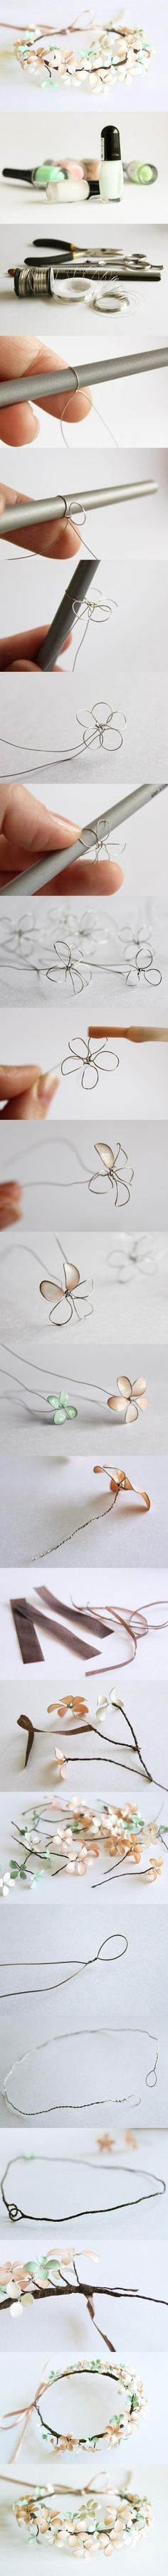 Wow beautiful flowers made from thin wire and nail polish